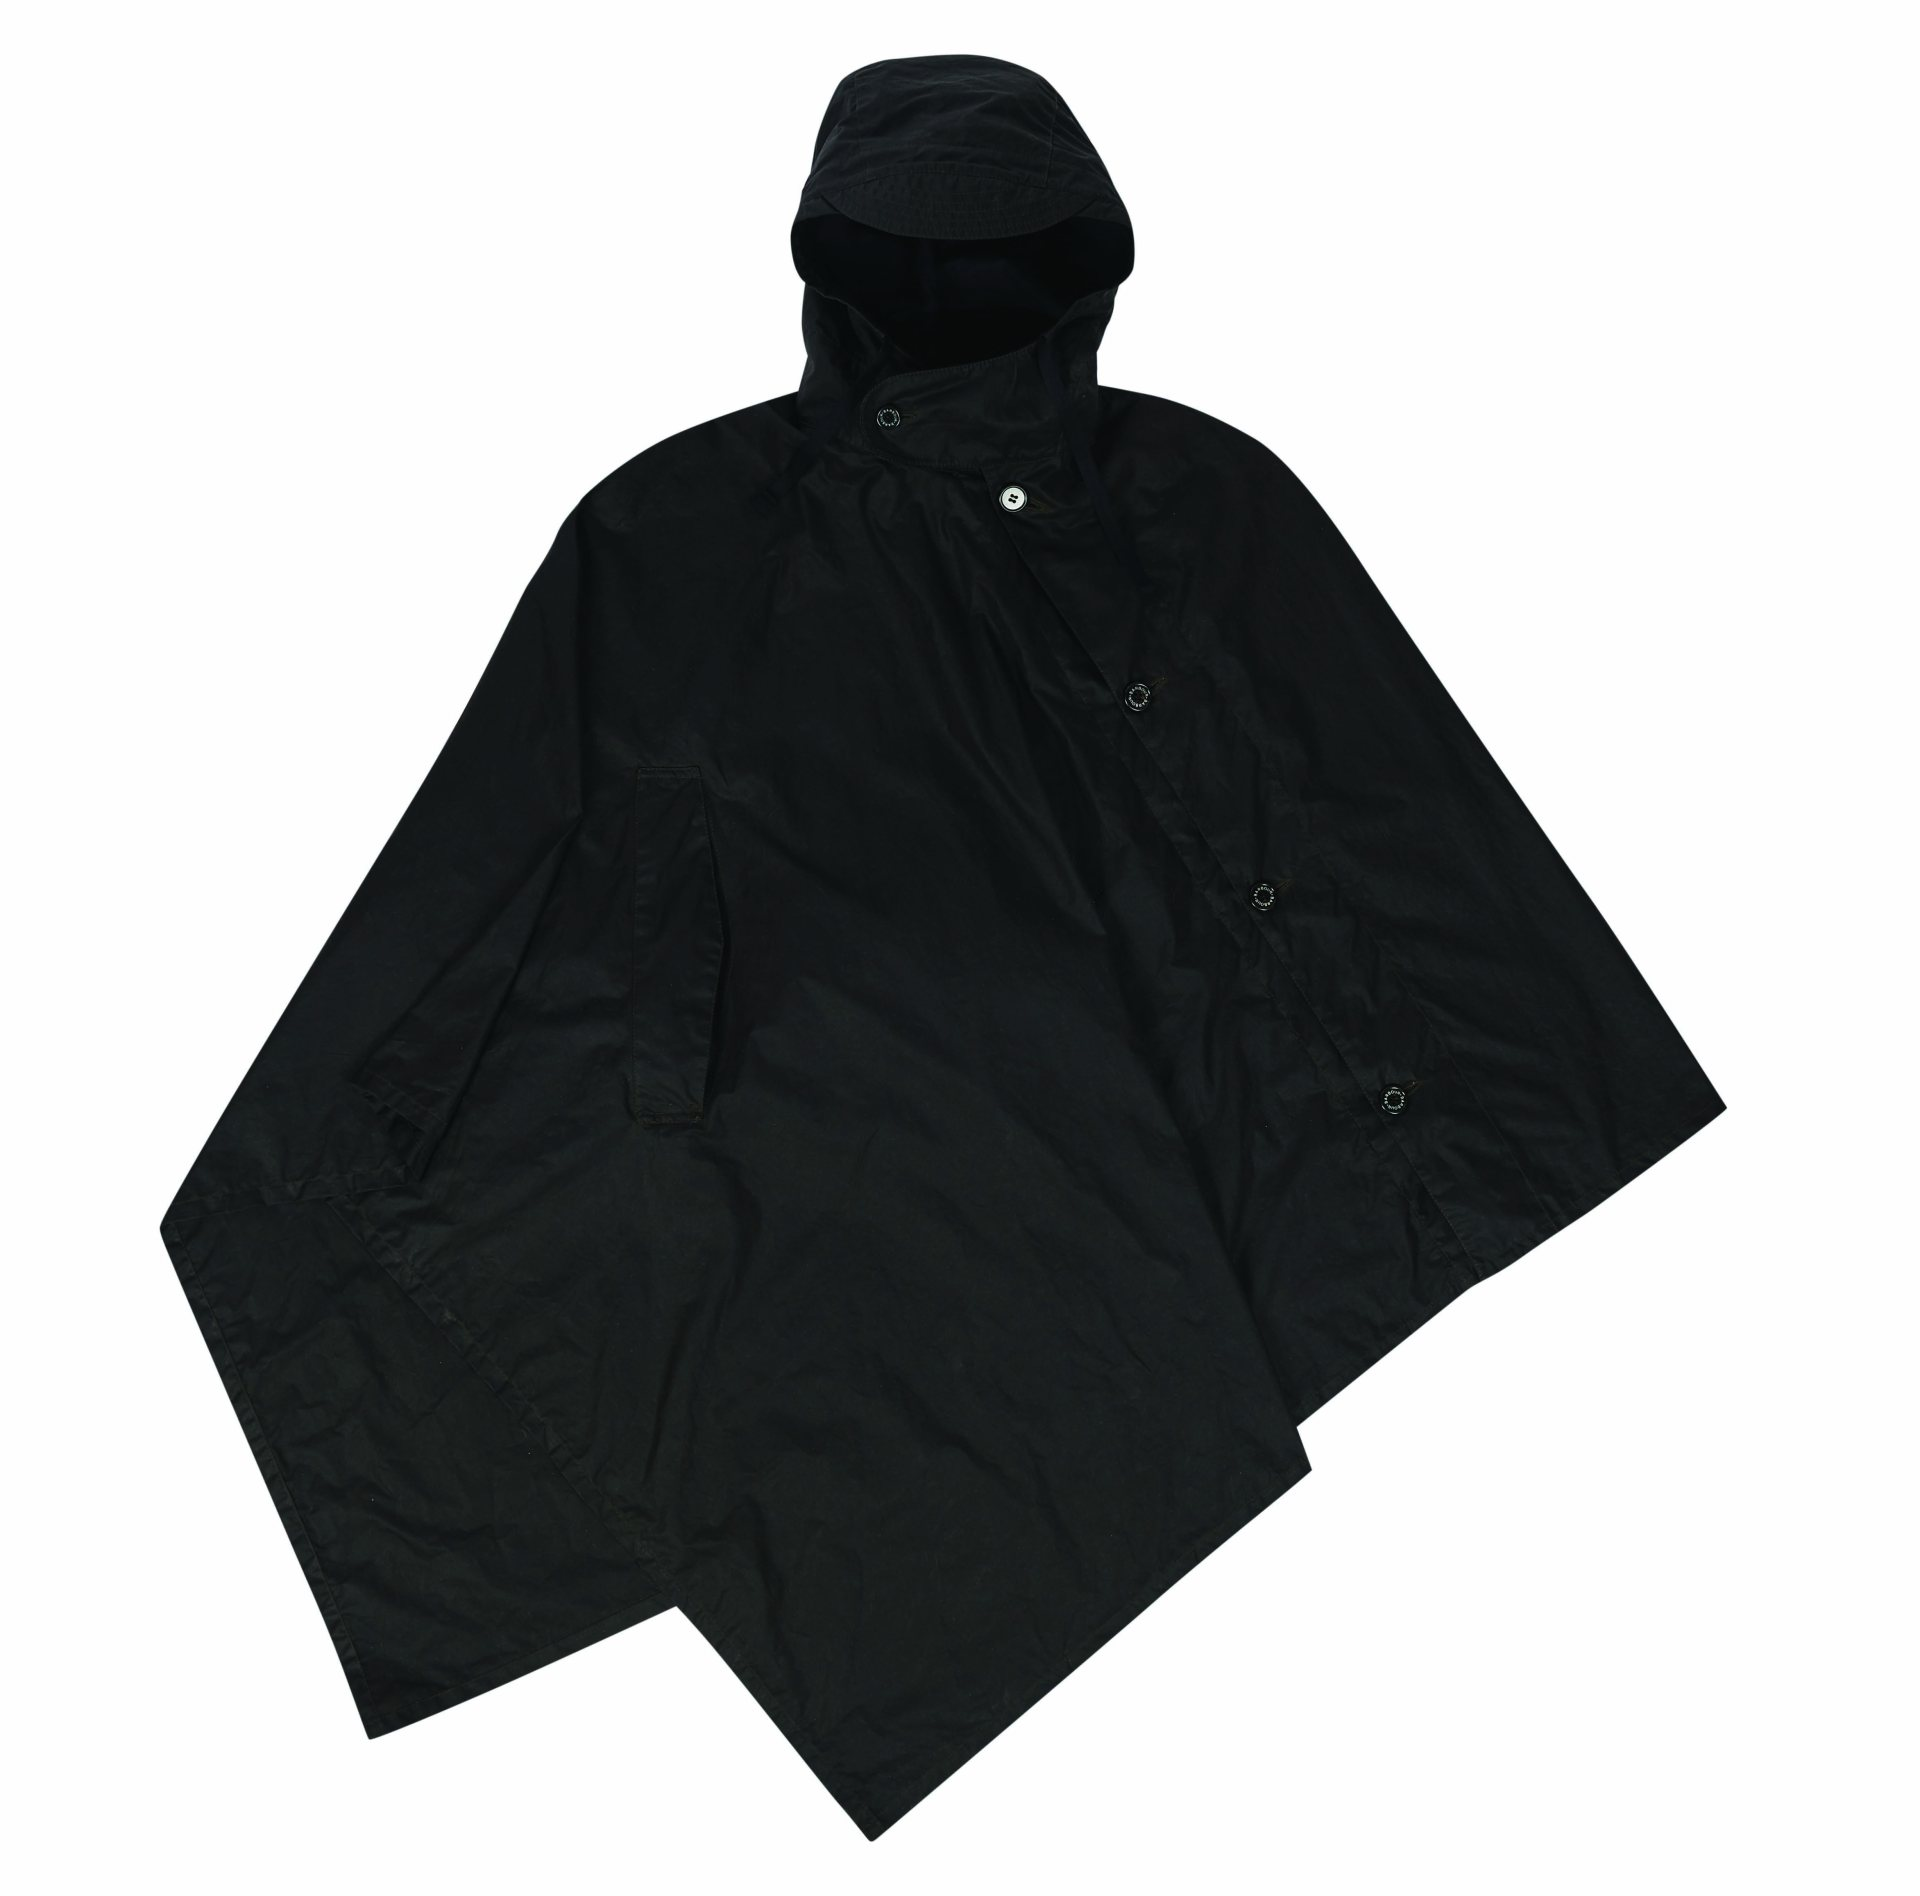 BARBOUR X ENGINEERED GARMENTS -CAPE - MWX1438 - £399